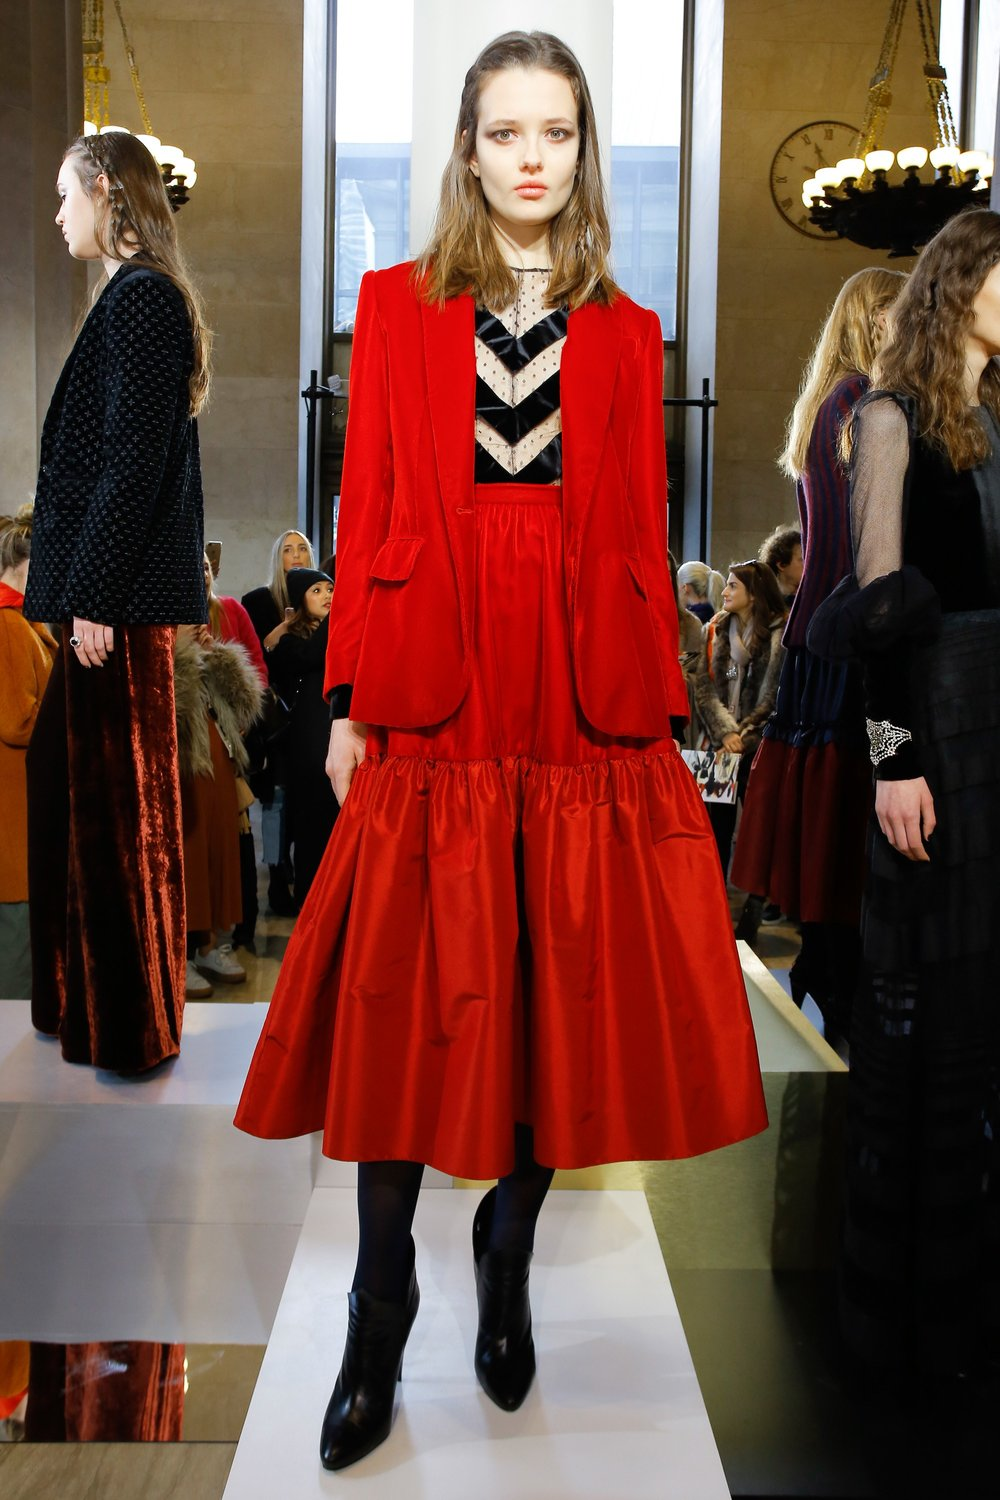 Jill Stuart Fashion Presentation Fall Winter 2017 Esther Santer Fashion Blog Louboutins & Love NYC Street Style Blogger Outfit OOTD Trendy Runway Run Way NYFW Leather Lace Boots Velvet Black Colors Colorful Pinstripes Skirt Shirt Coat Jacket Red Trend.jpg